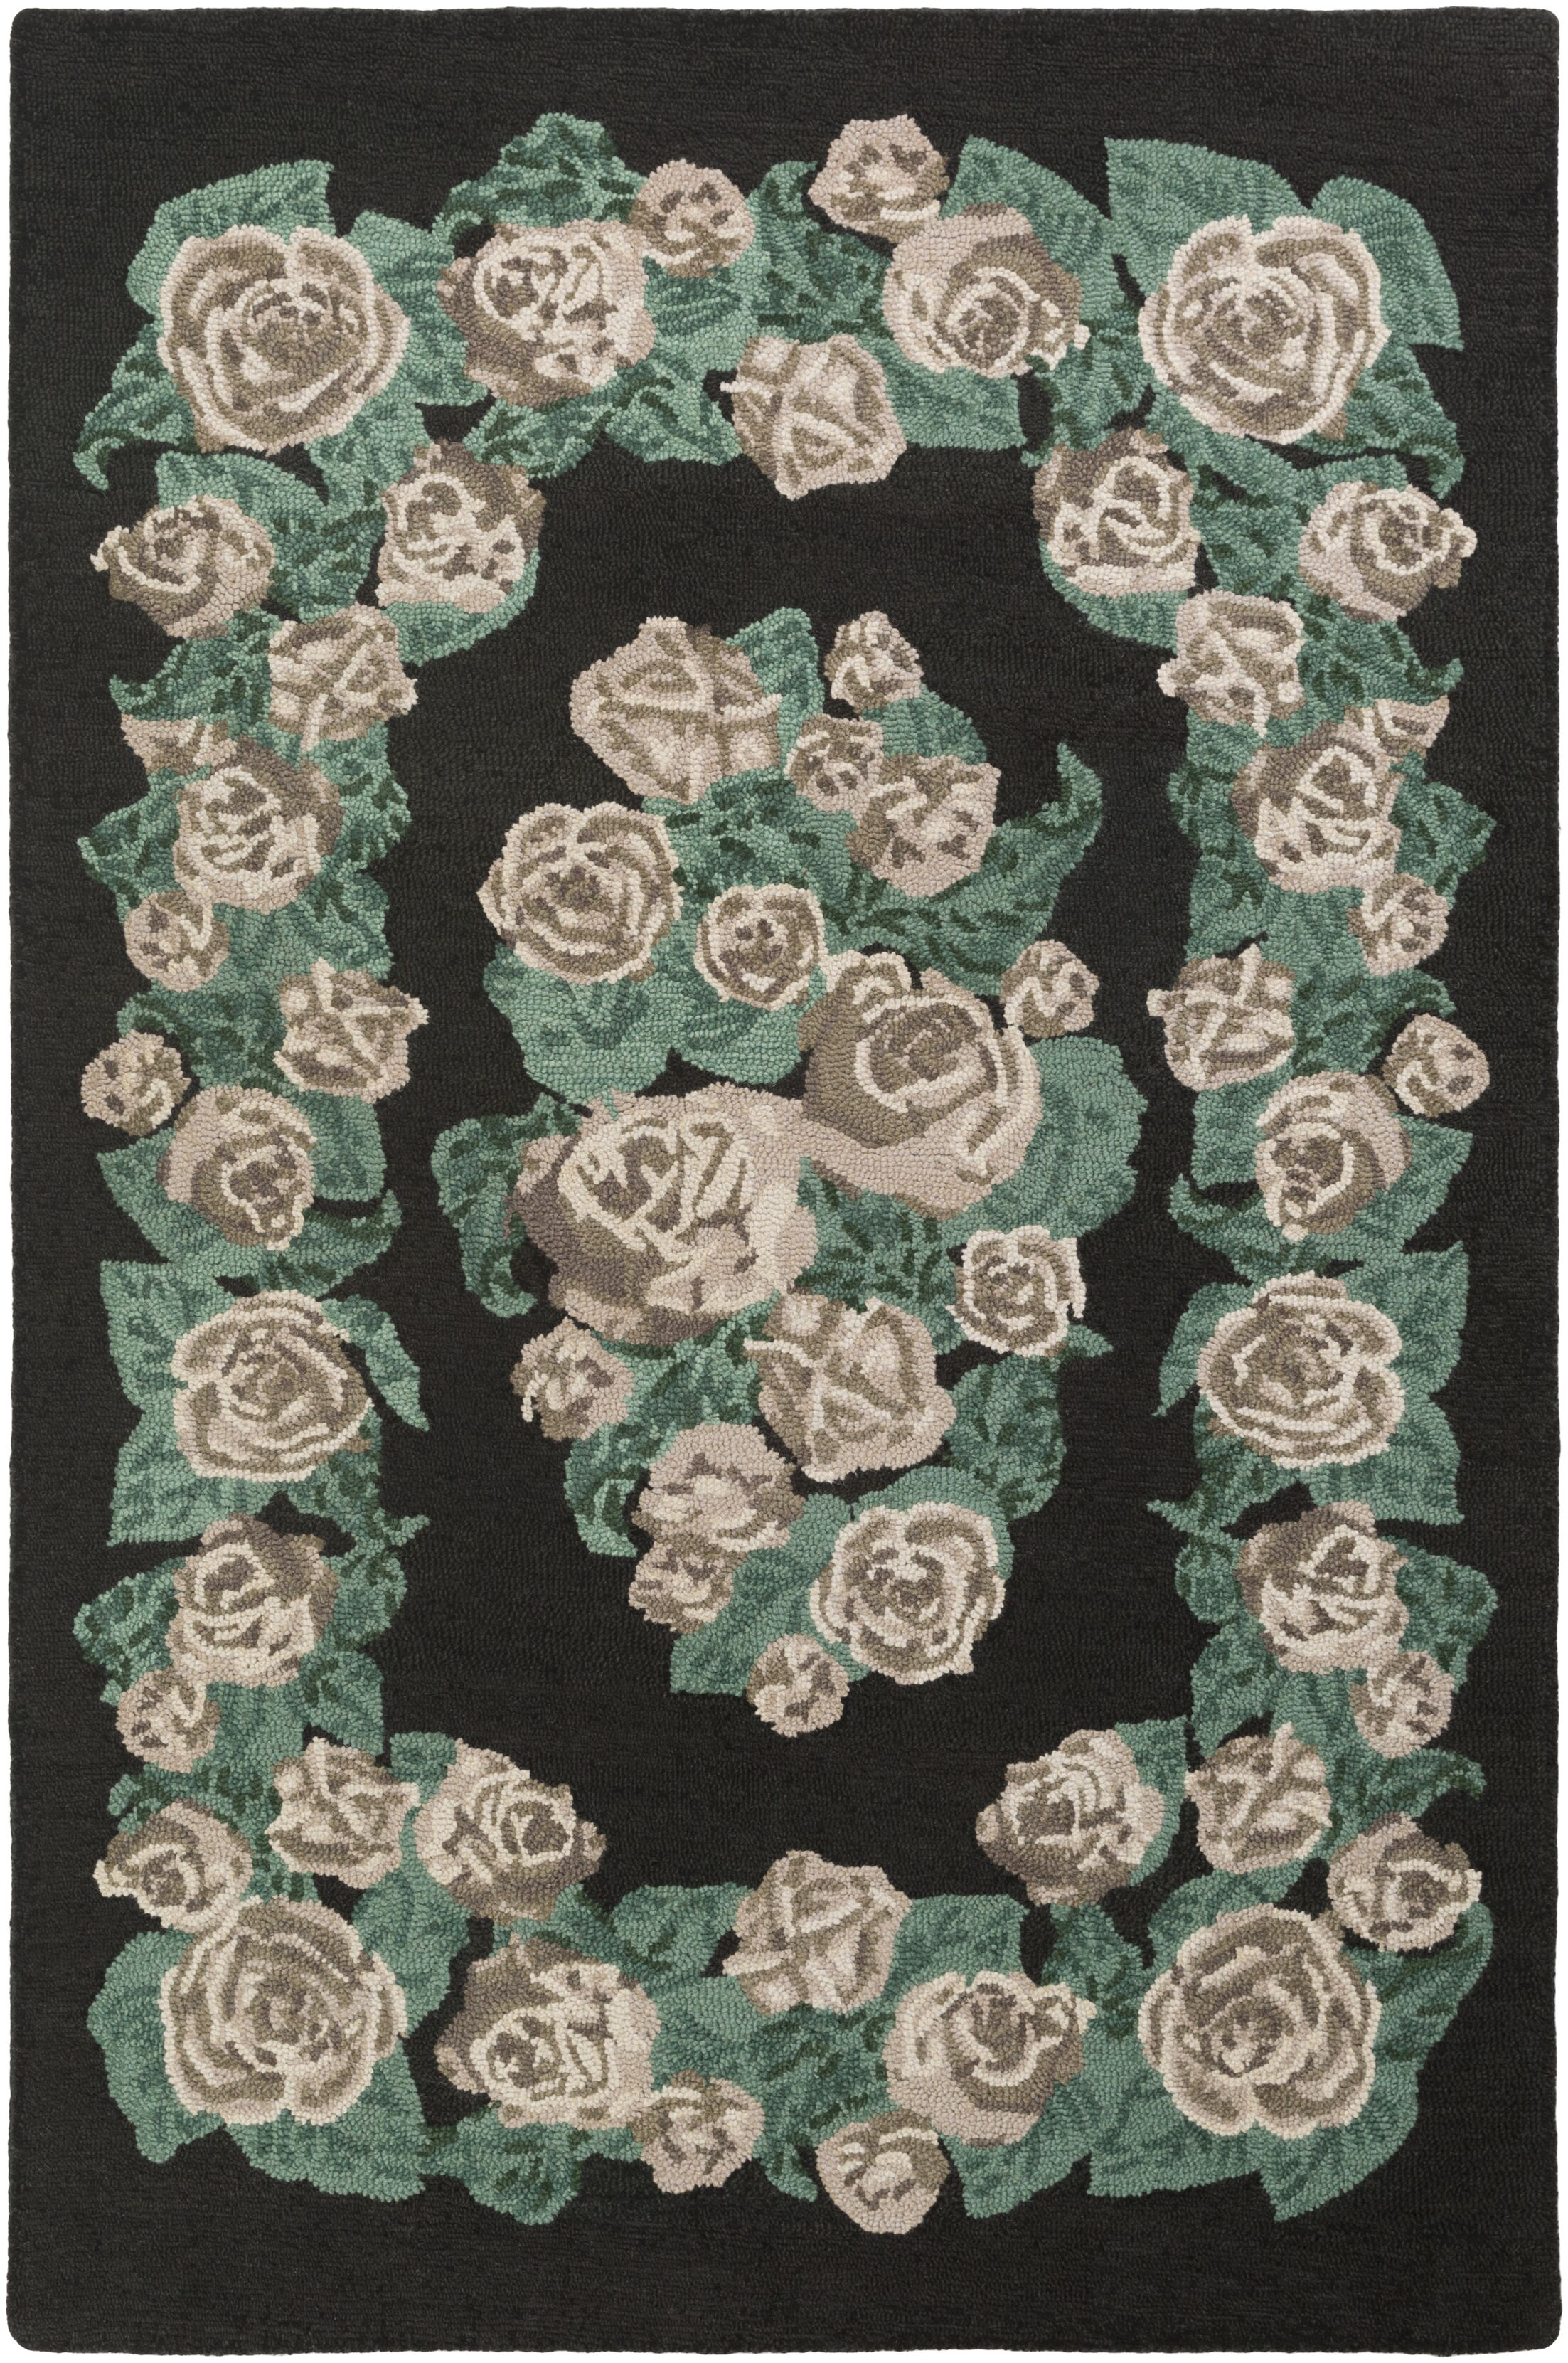 Lackey Hand-Tufted Green Area Rug Rug Size: Rectangle 8' x 10'